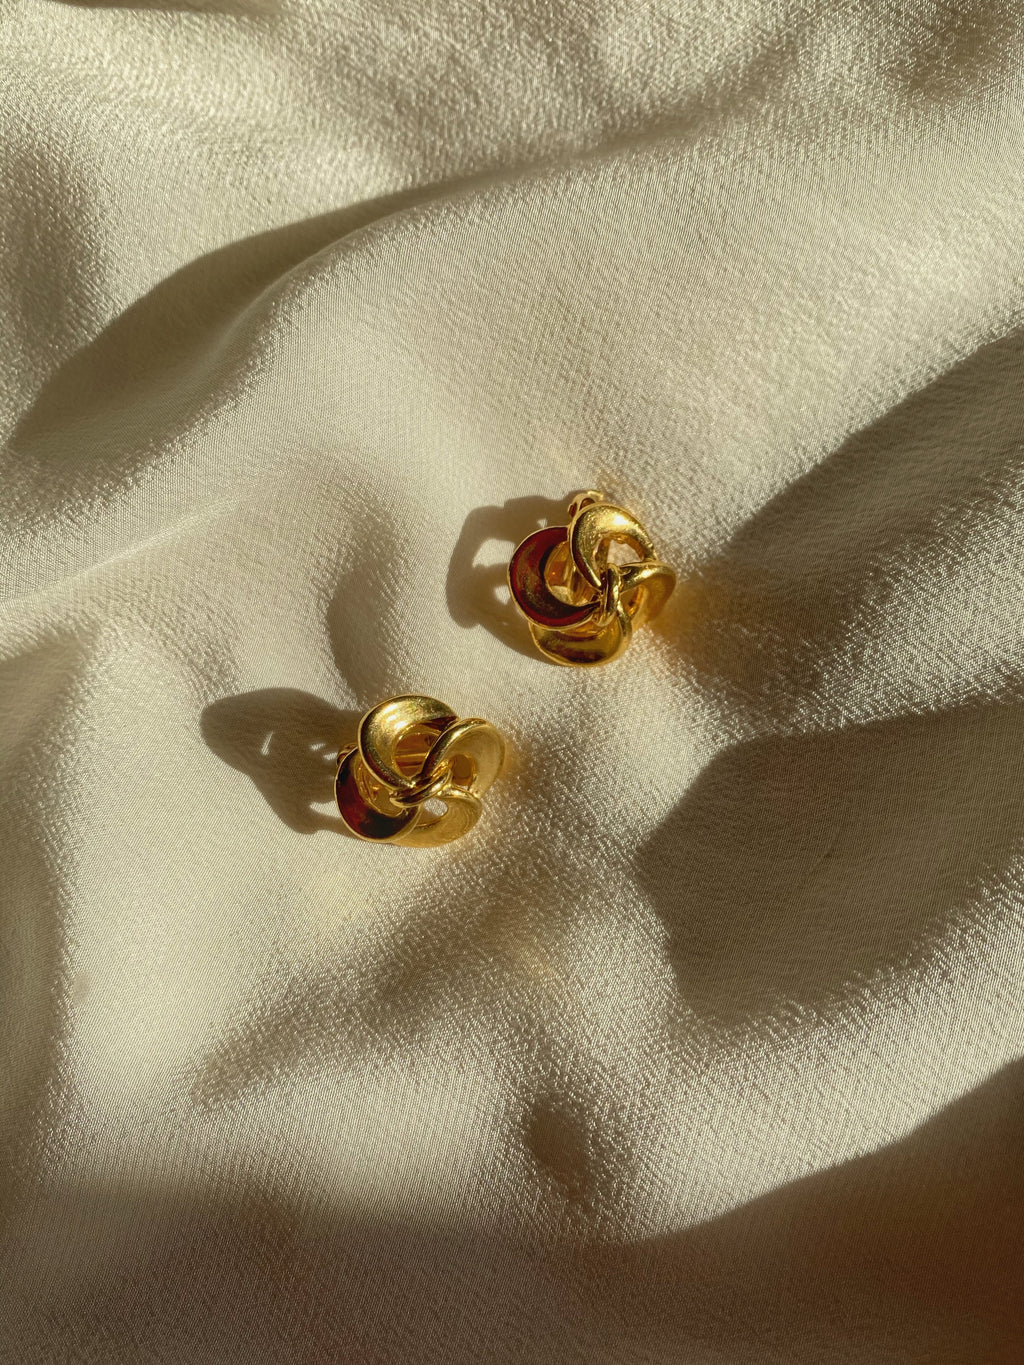 Vintage goldtone flower shape clip earrings